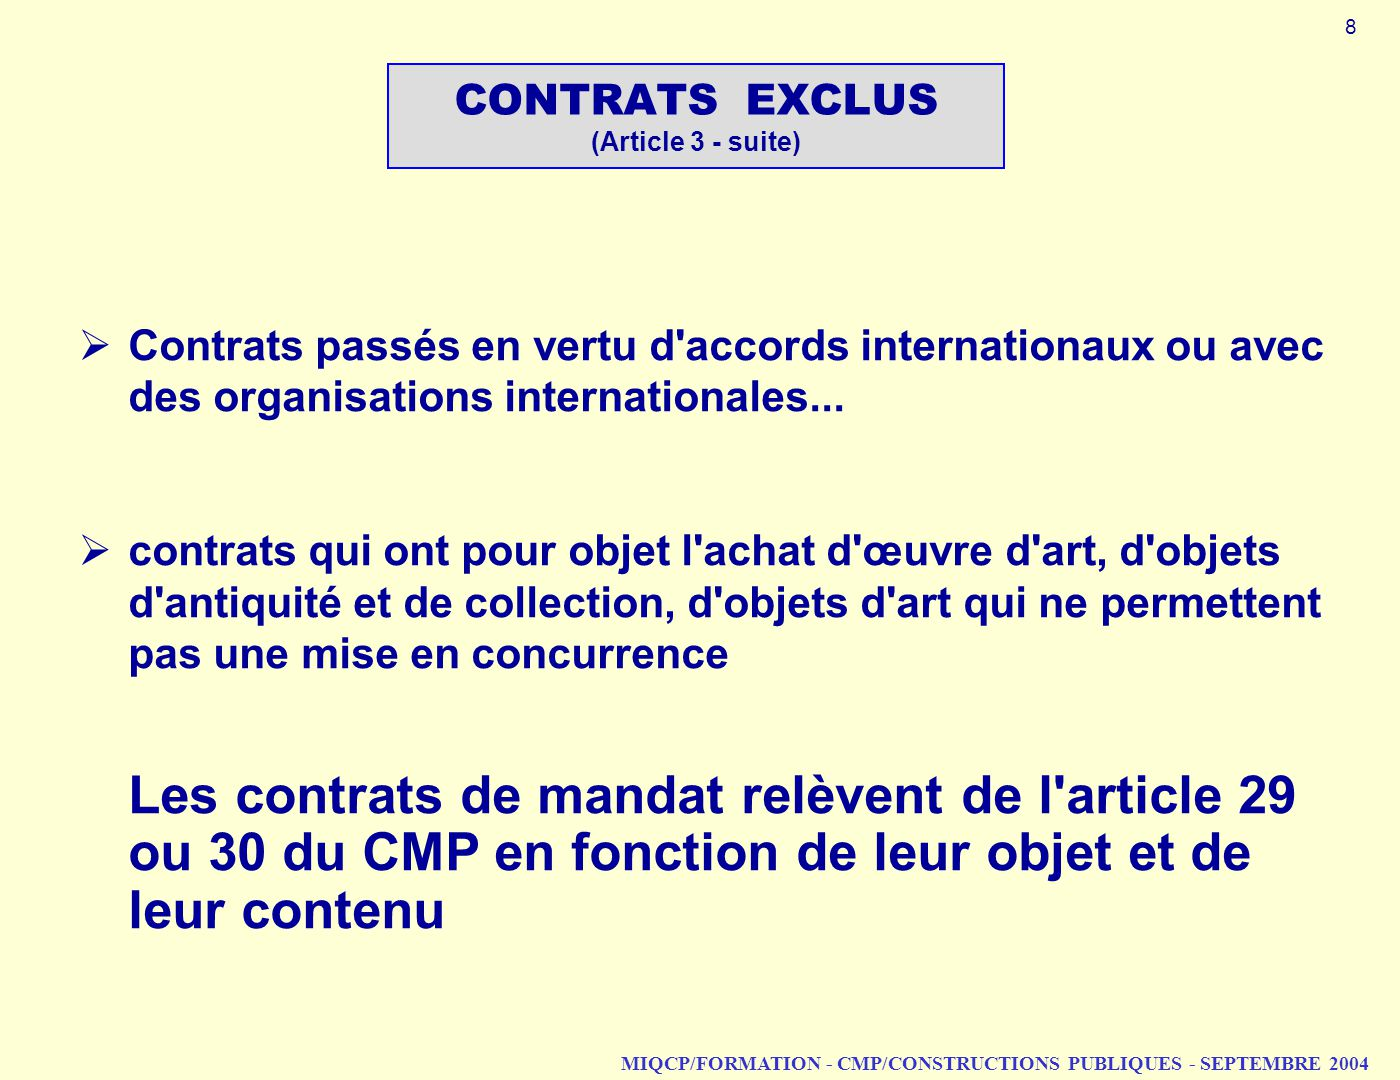 CONTRATS EXCLUS (Article 3 - suite)